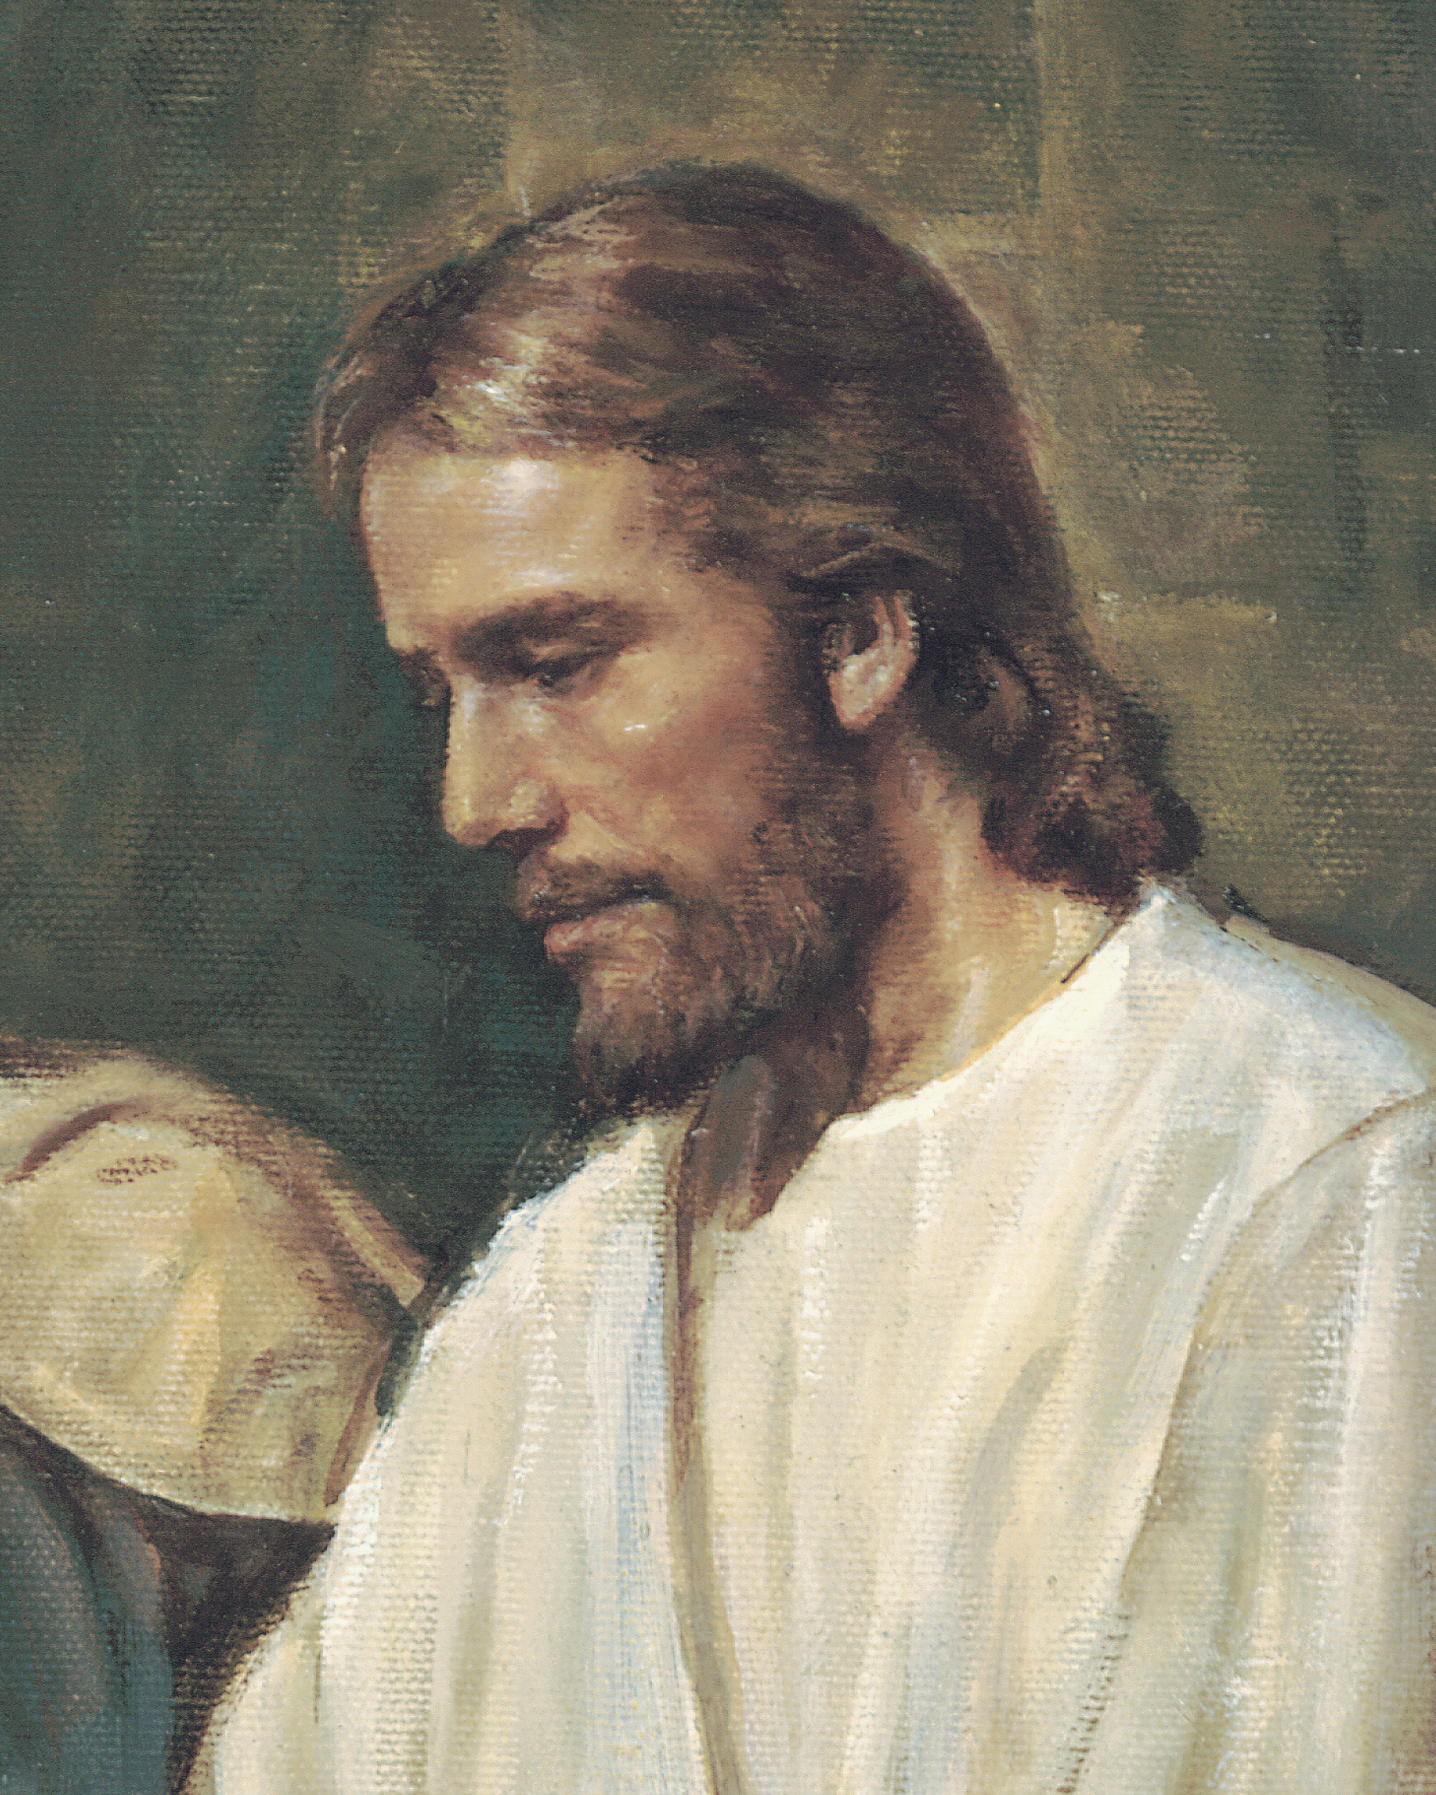 Detail of the Savior's face from the painting Christ Healing a Blind Man, by Del Parson